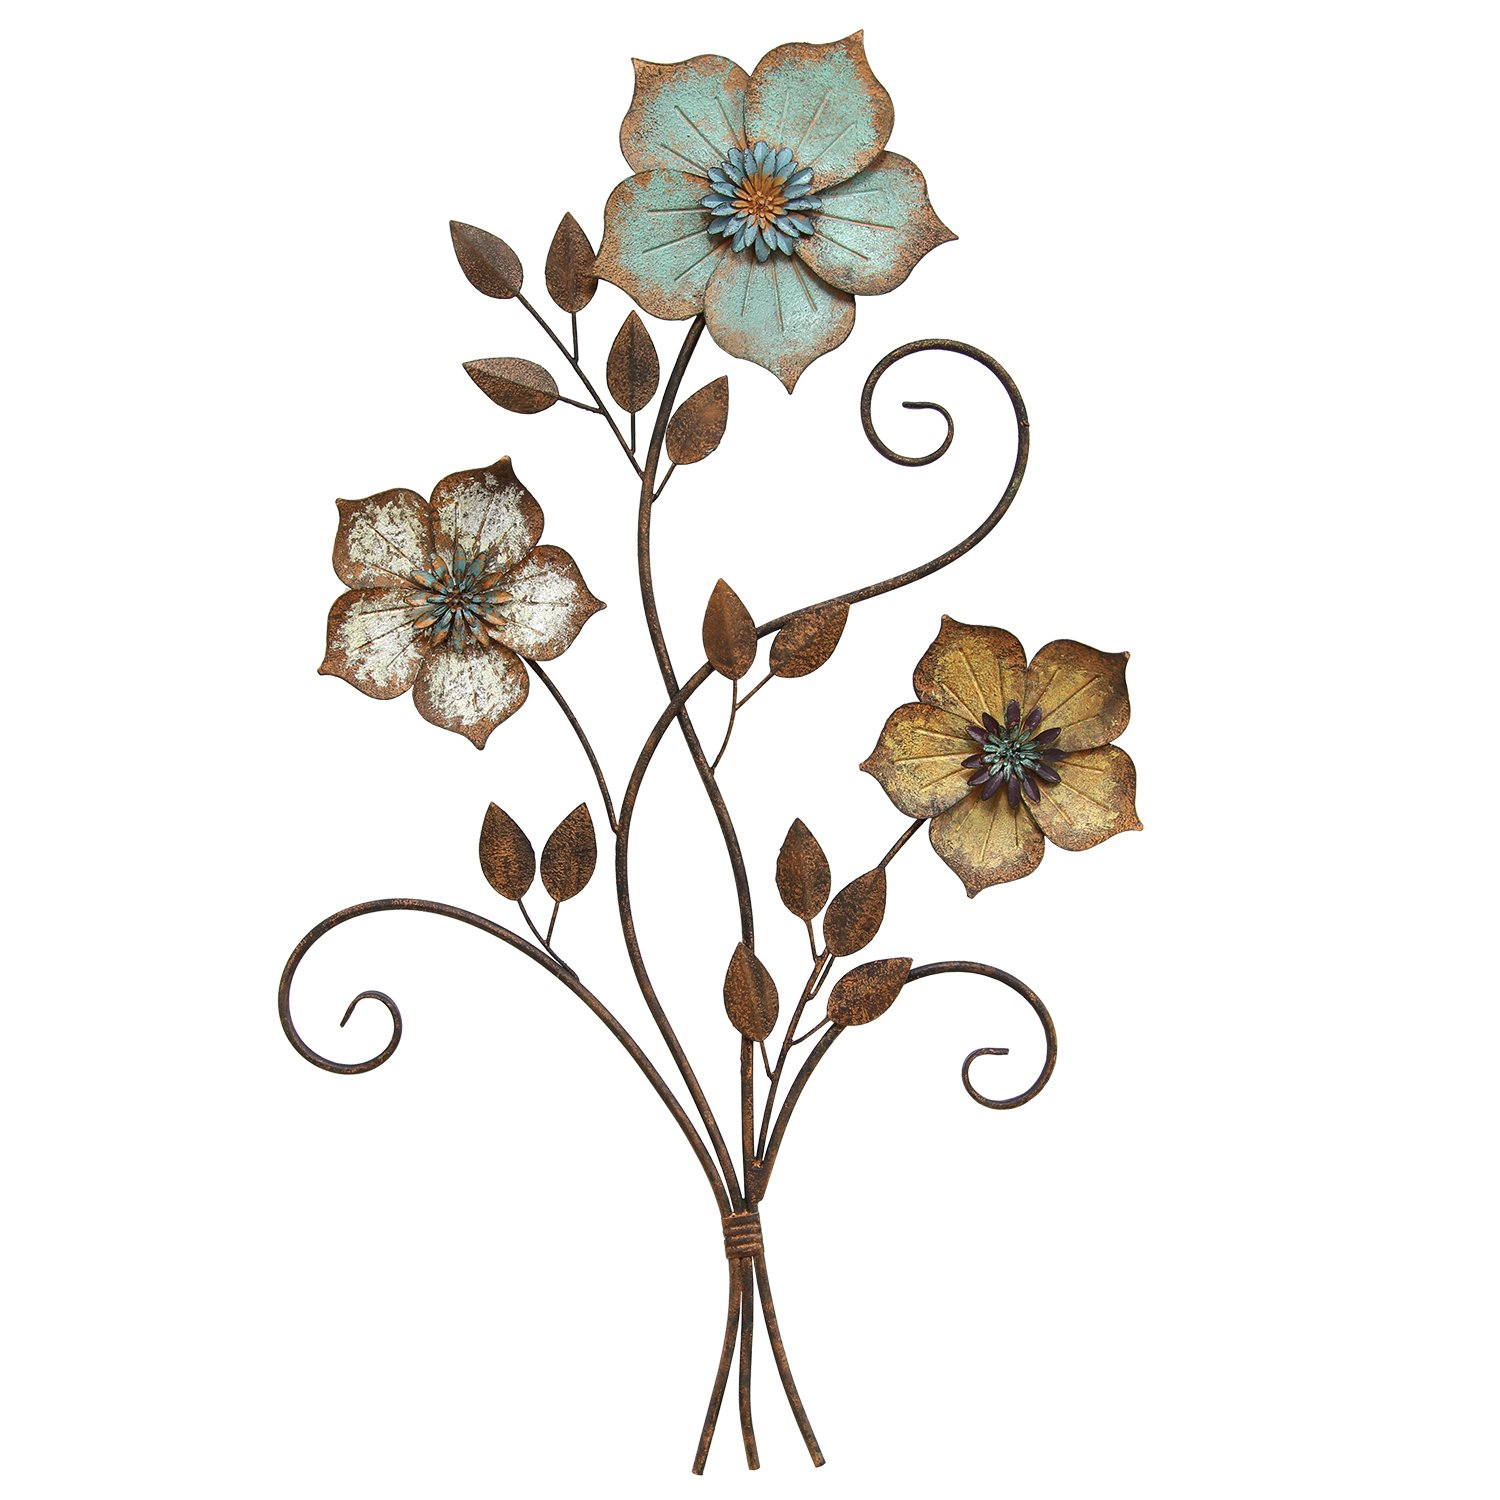 Stratton Home Decor S02369 Tricolor Flower Wall Decor, 19.25 W x 1.50 D x 30.00 H, Multi by Stratton Home Decor